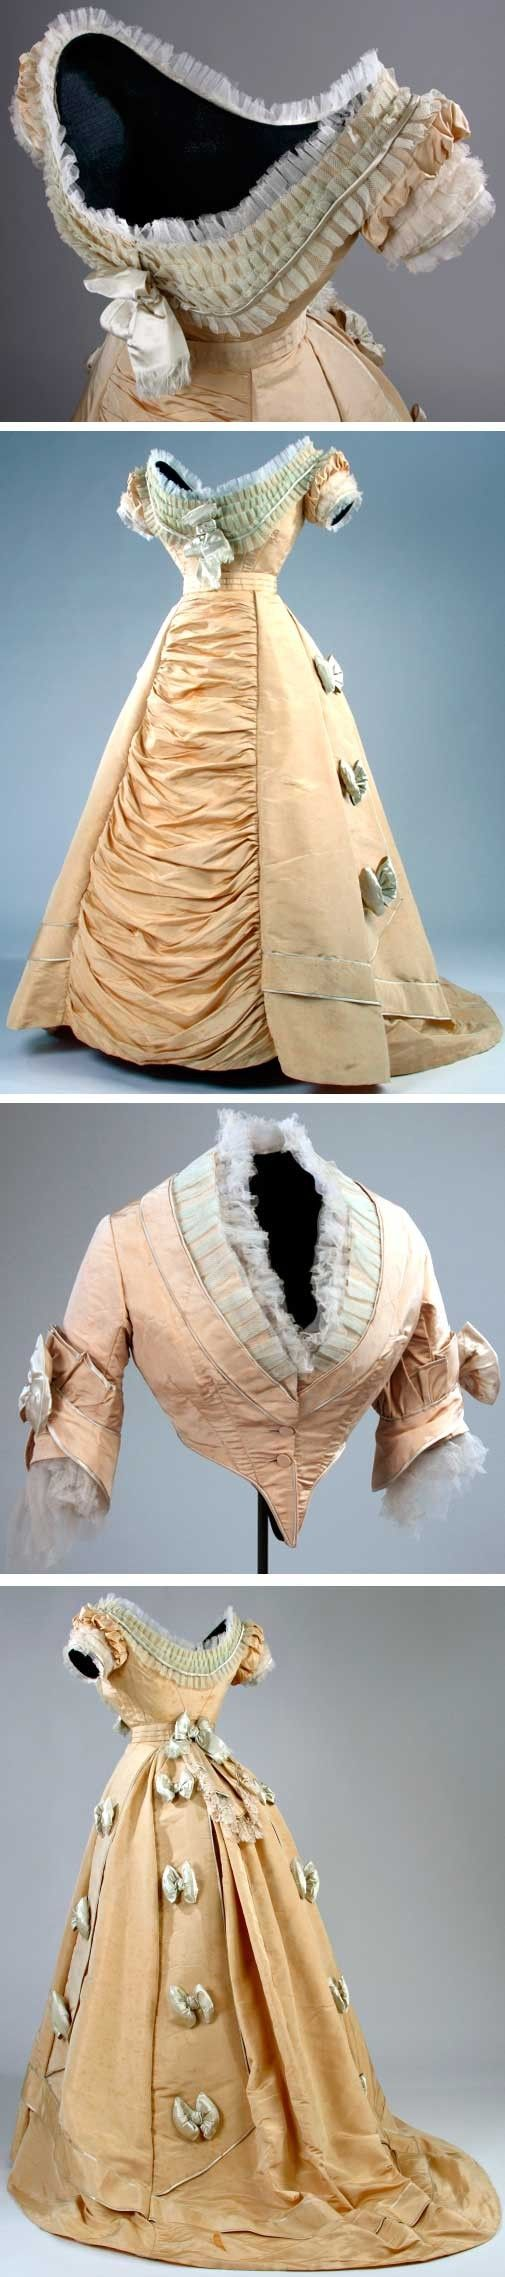 Dress, 1874. McCord Museum, Montreal